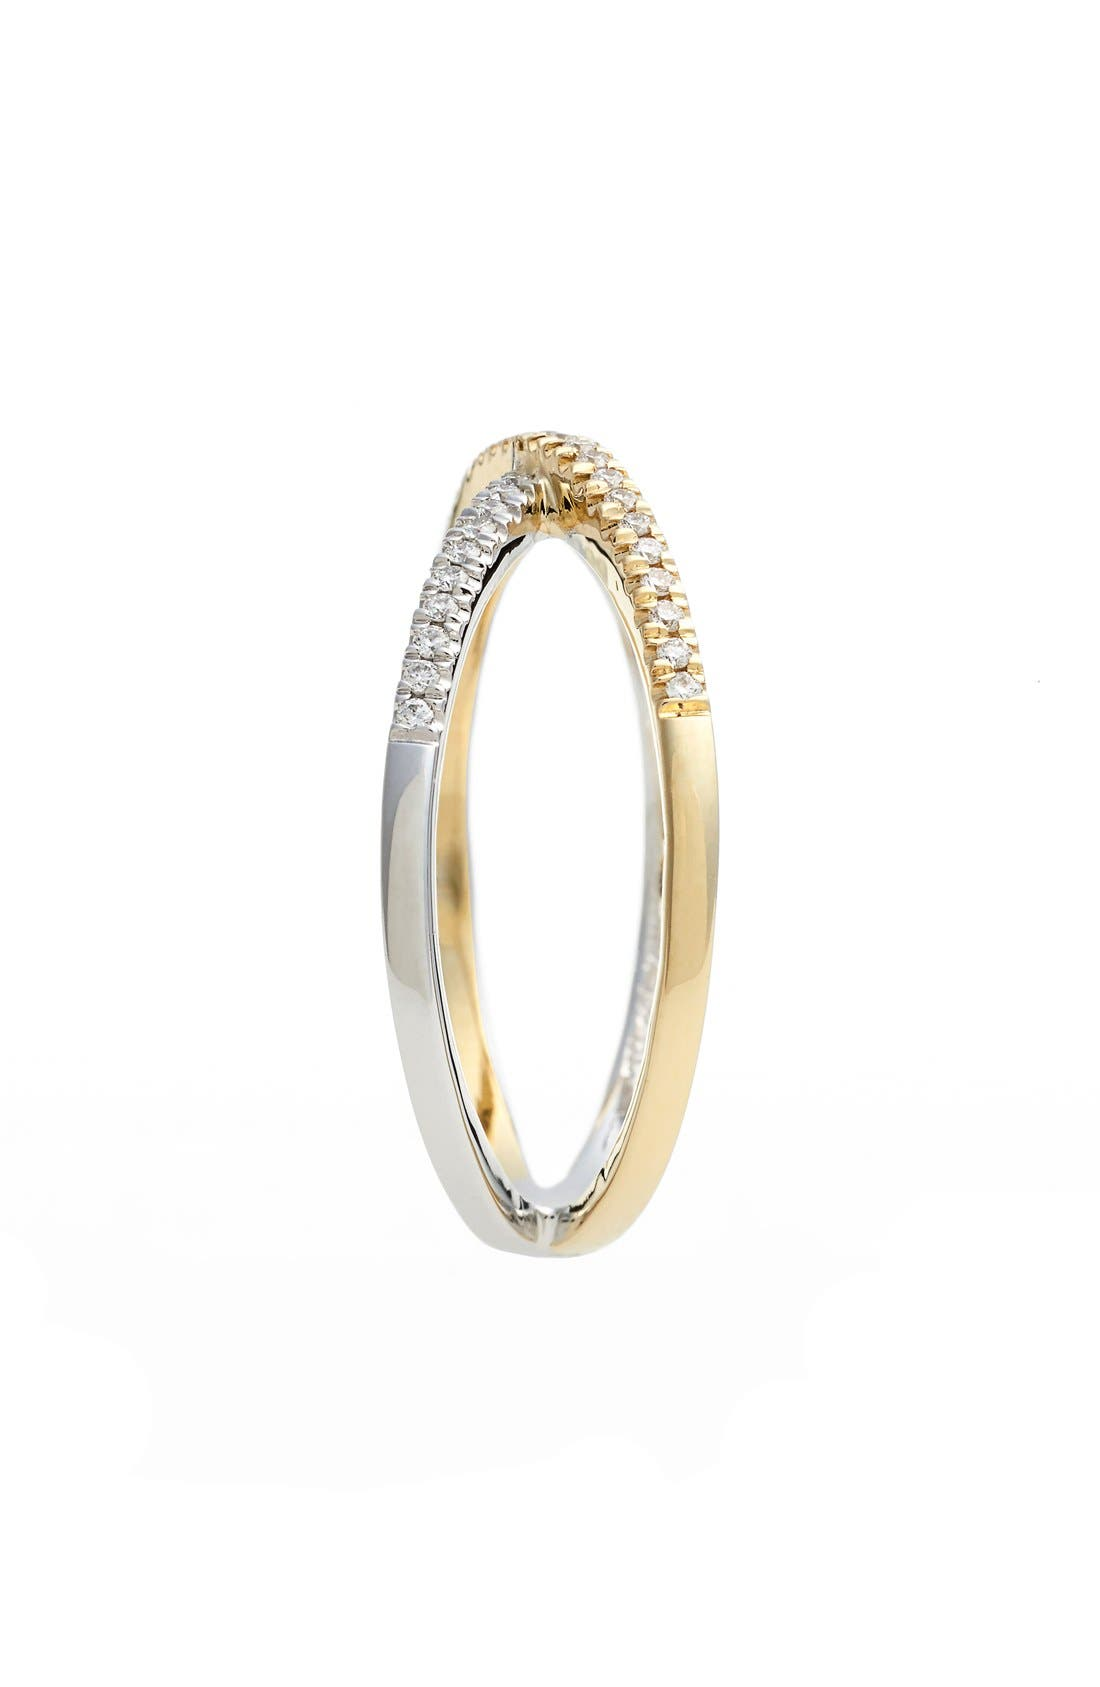 Stackable Crossover Diamond Ring,                             Alternate thumbnail 2, color,                             WHITE GOLD/ YELLOW GOLD